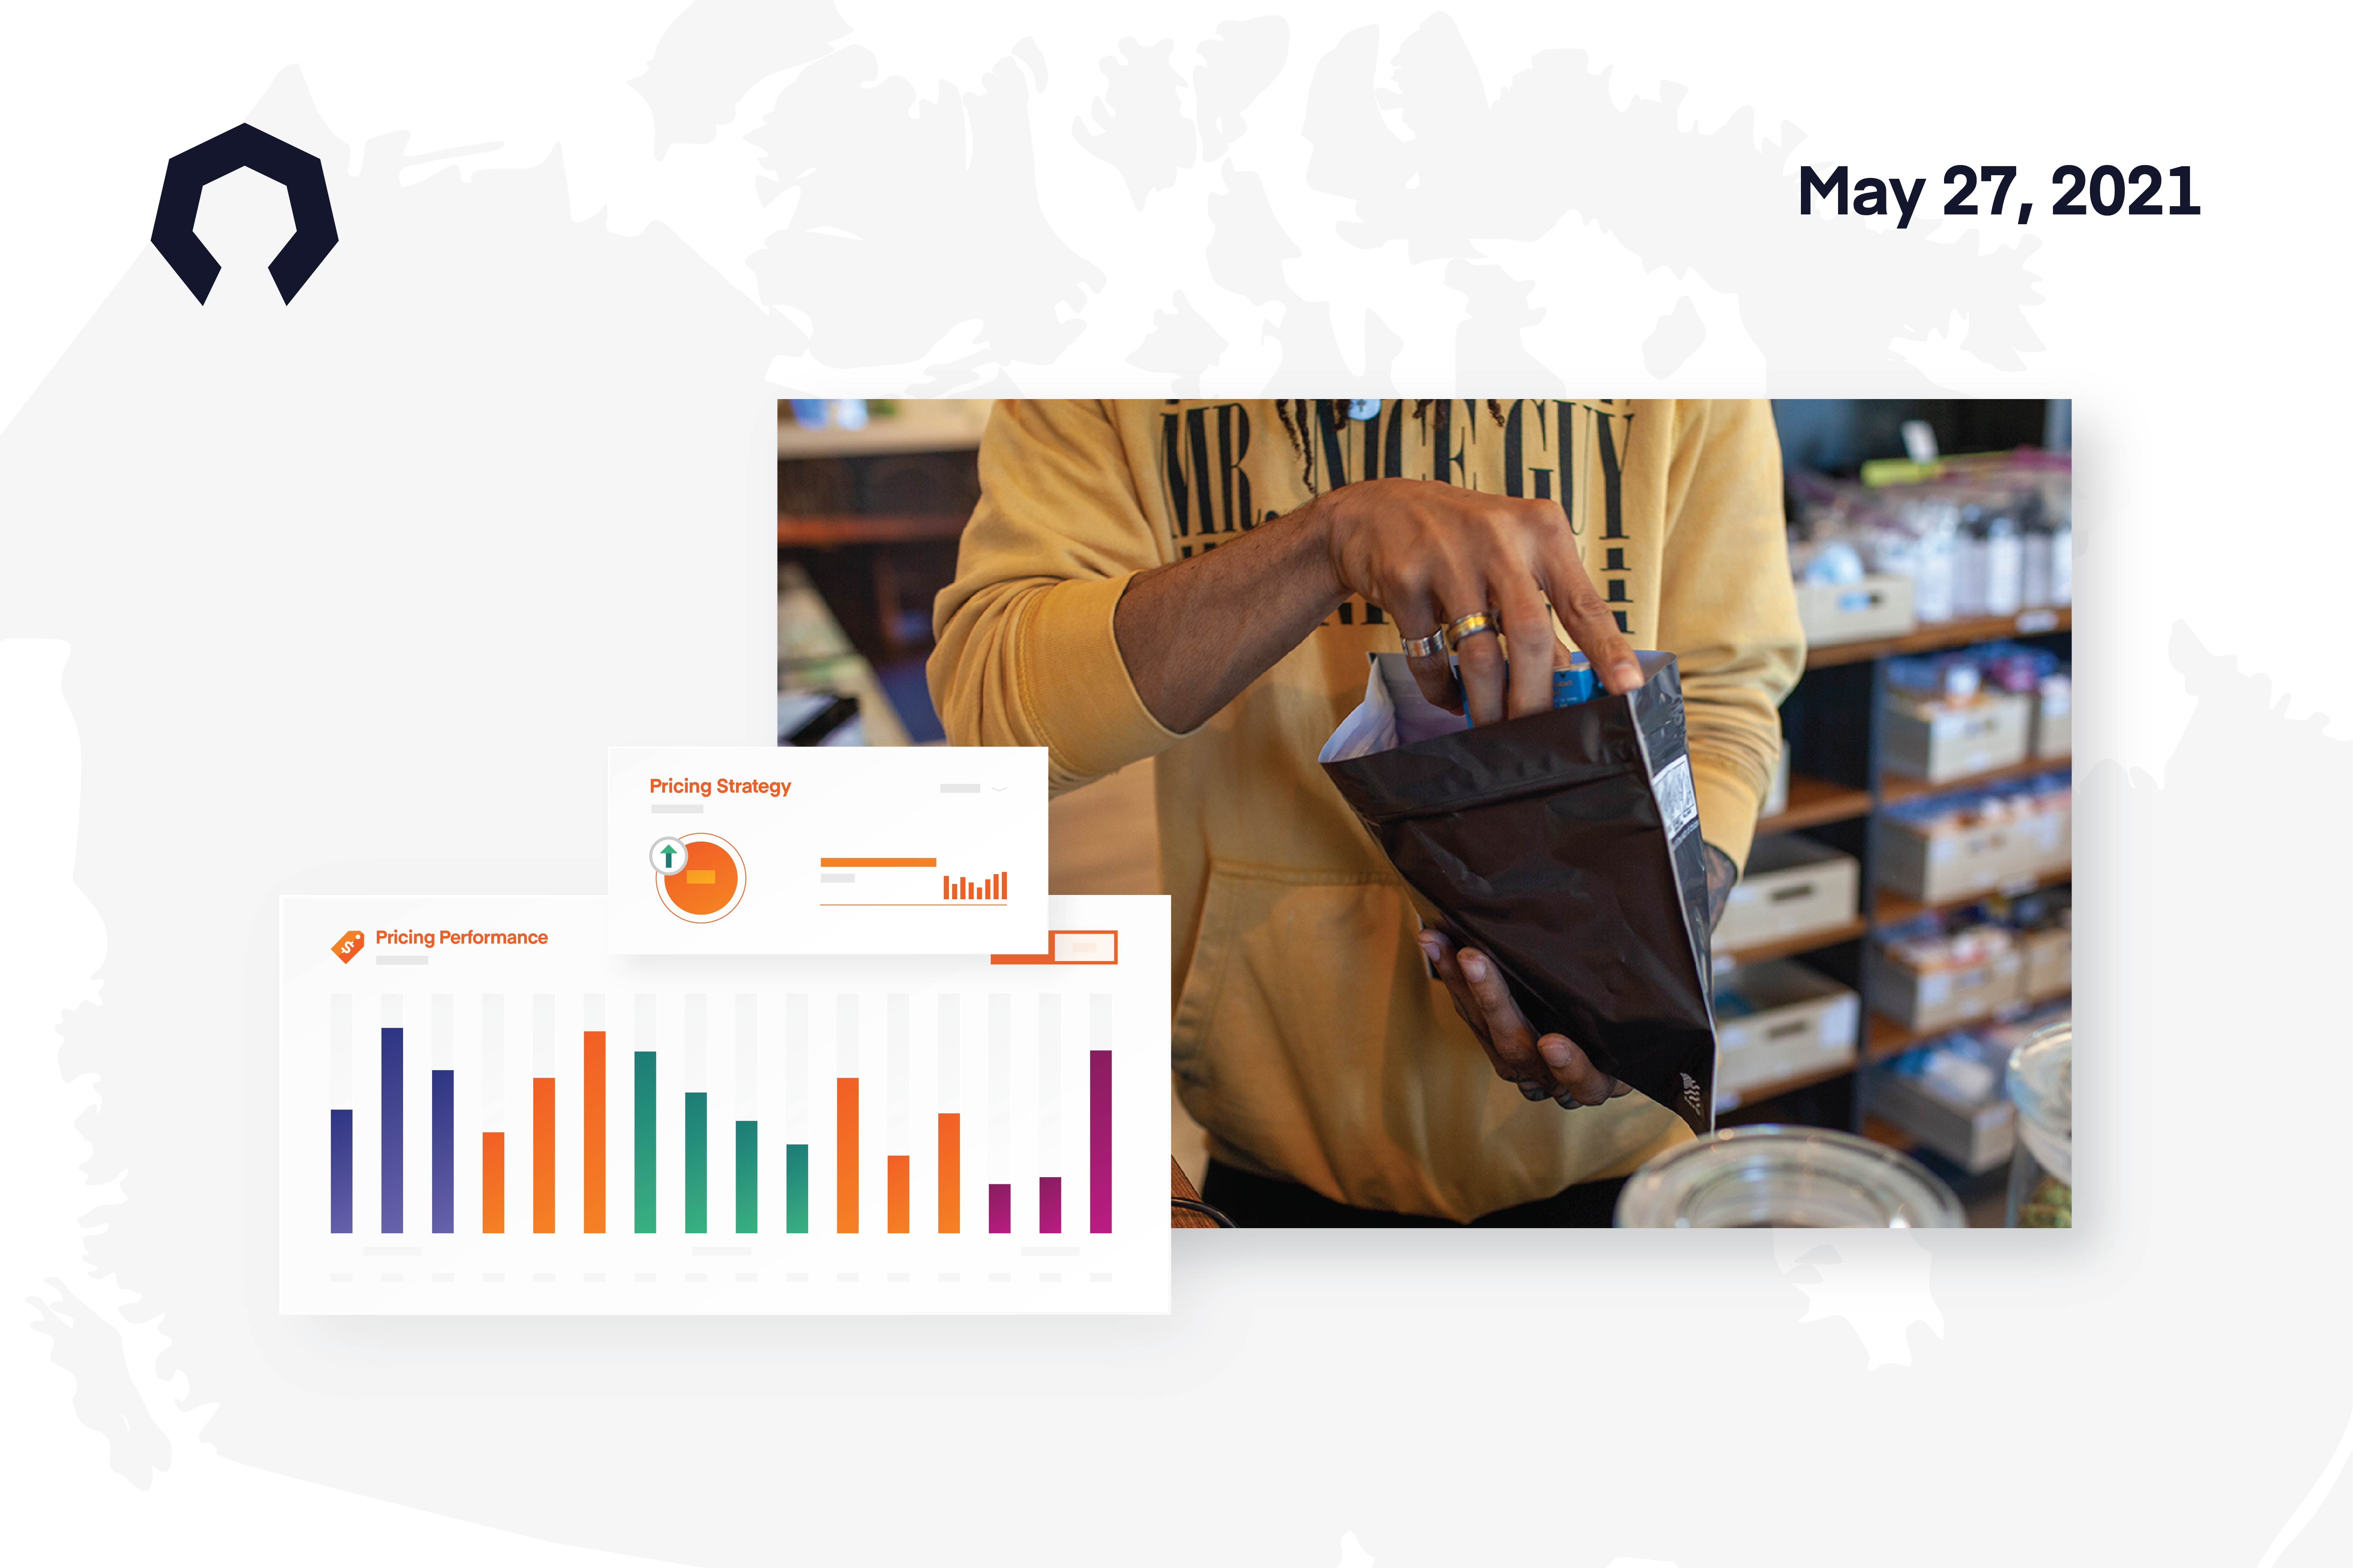 Inventory management: Spring cleaning using pricing tactics